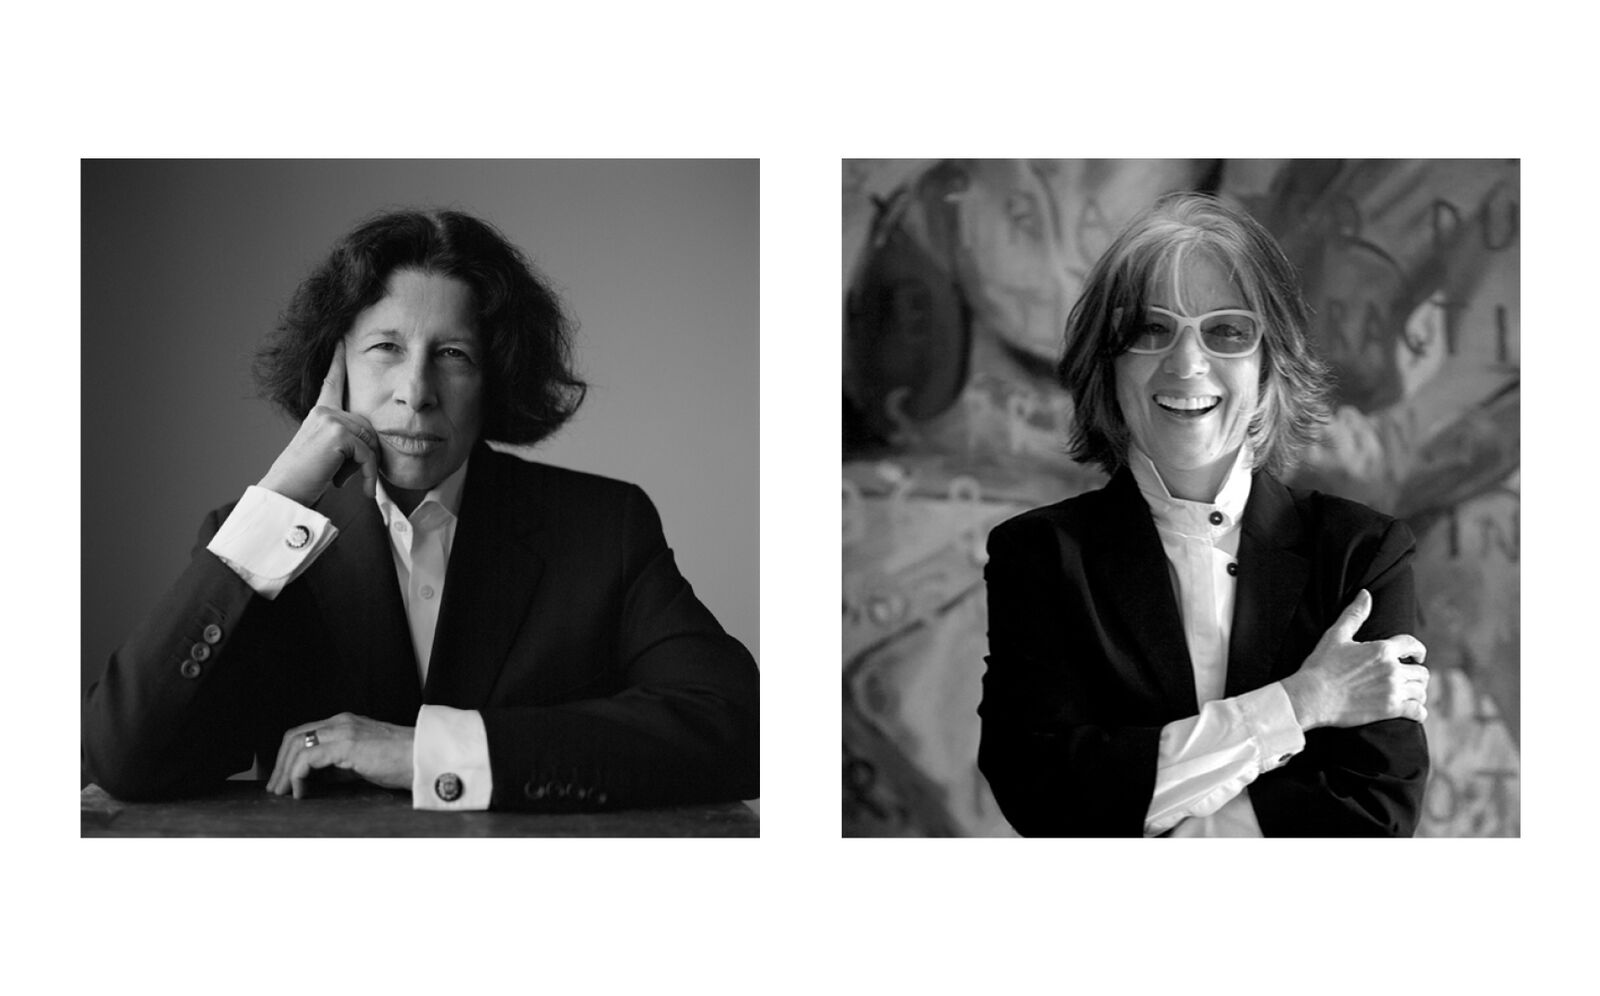 LOEWE Conversation #4 Fran Lebowitz and Gracie Mansion